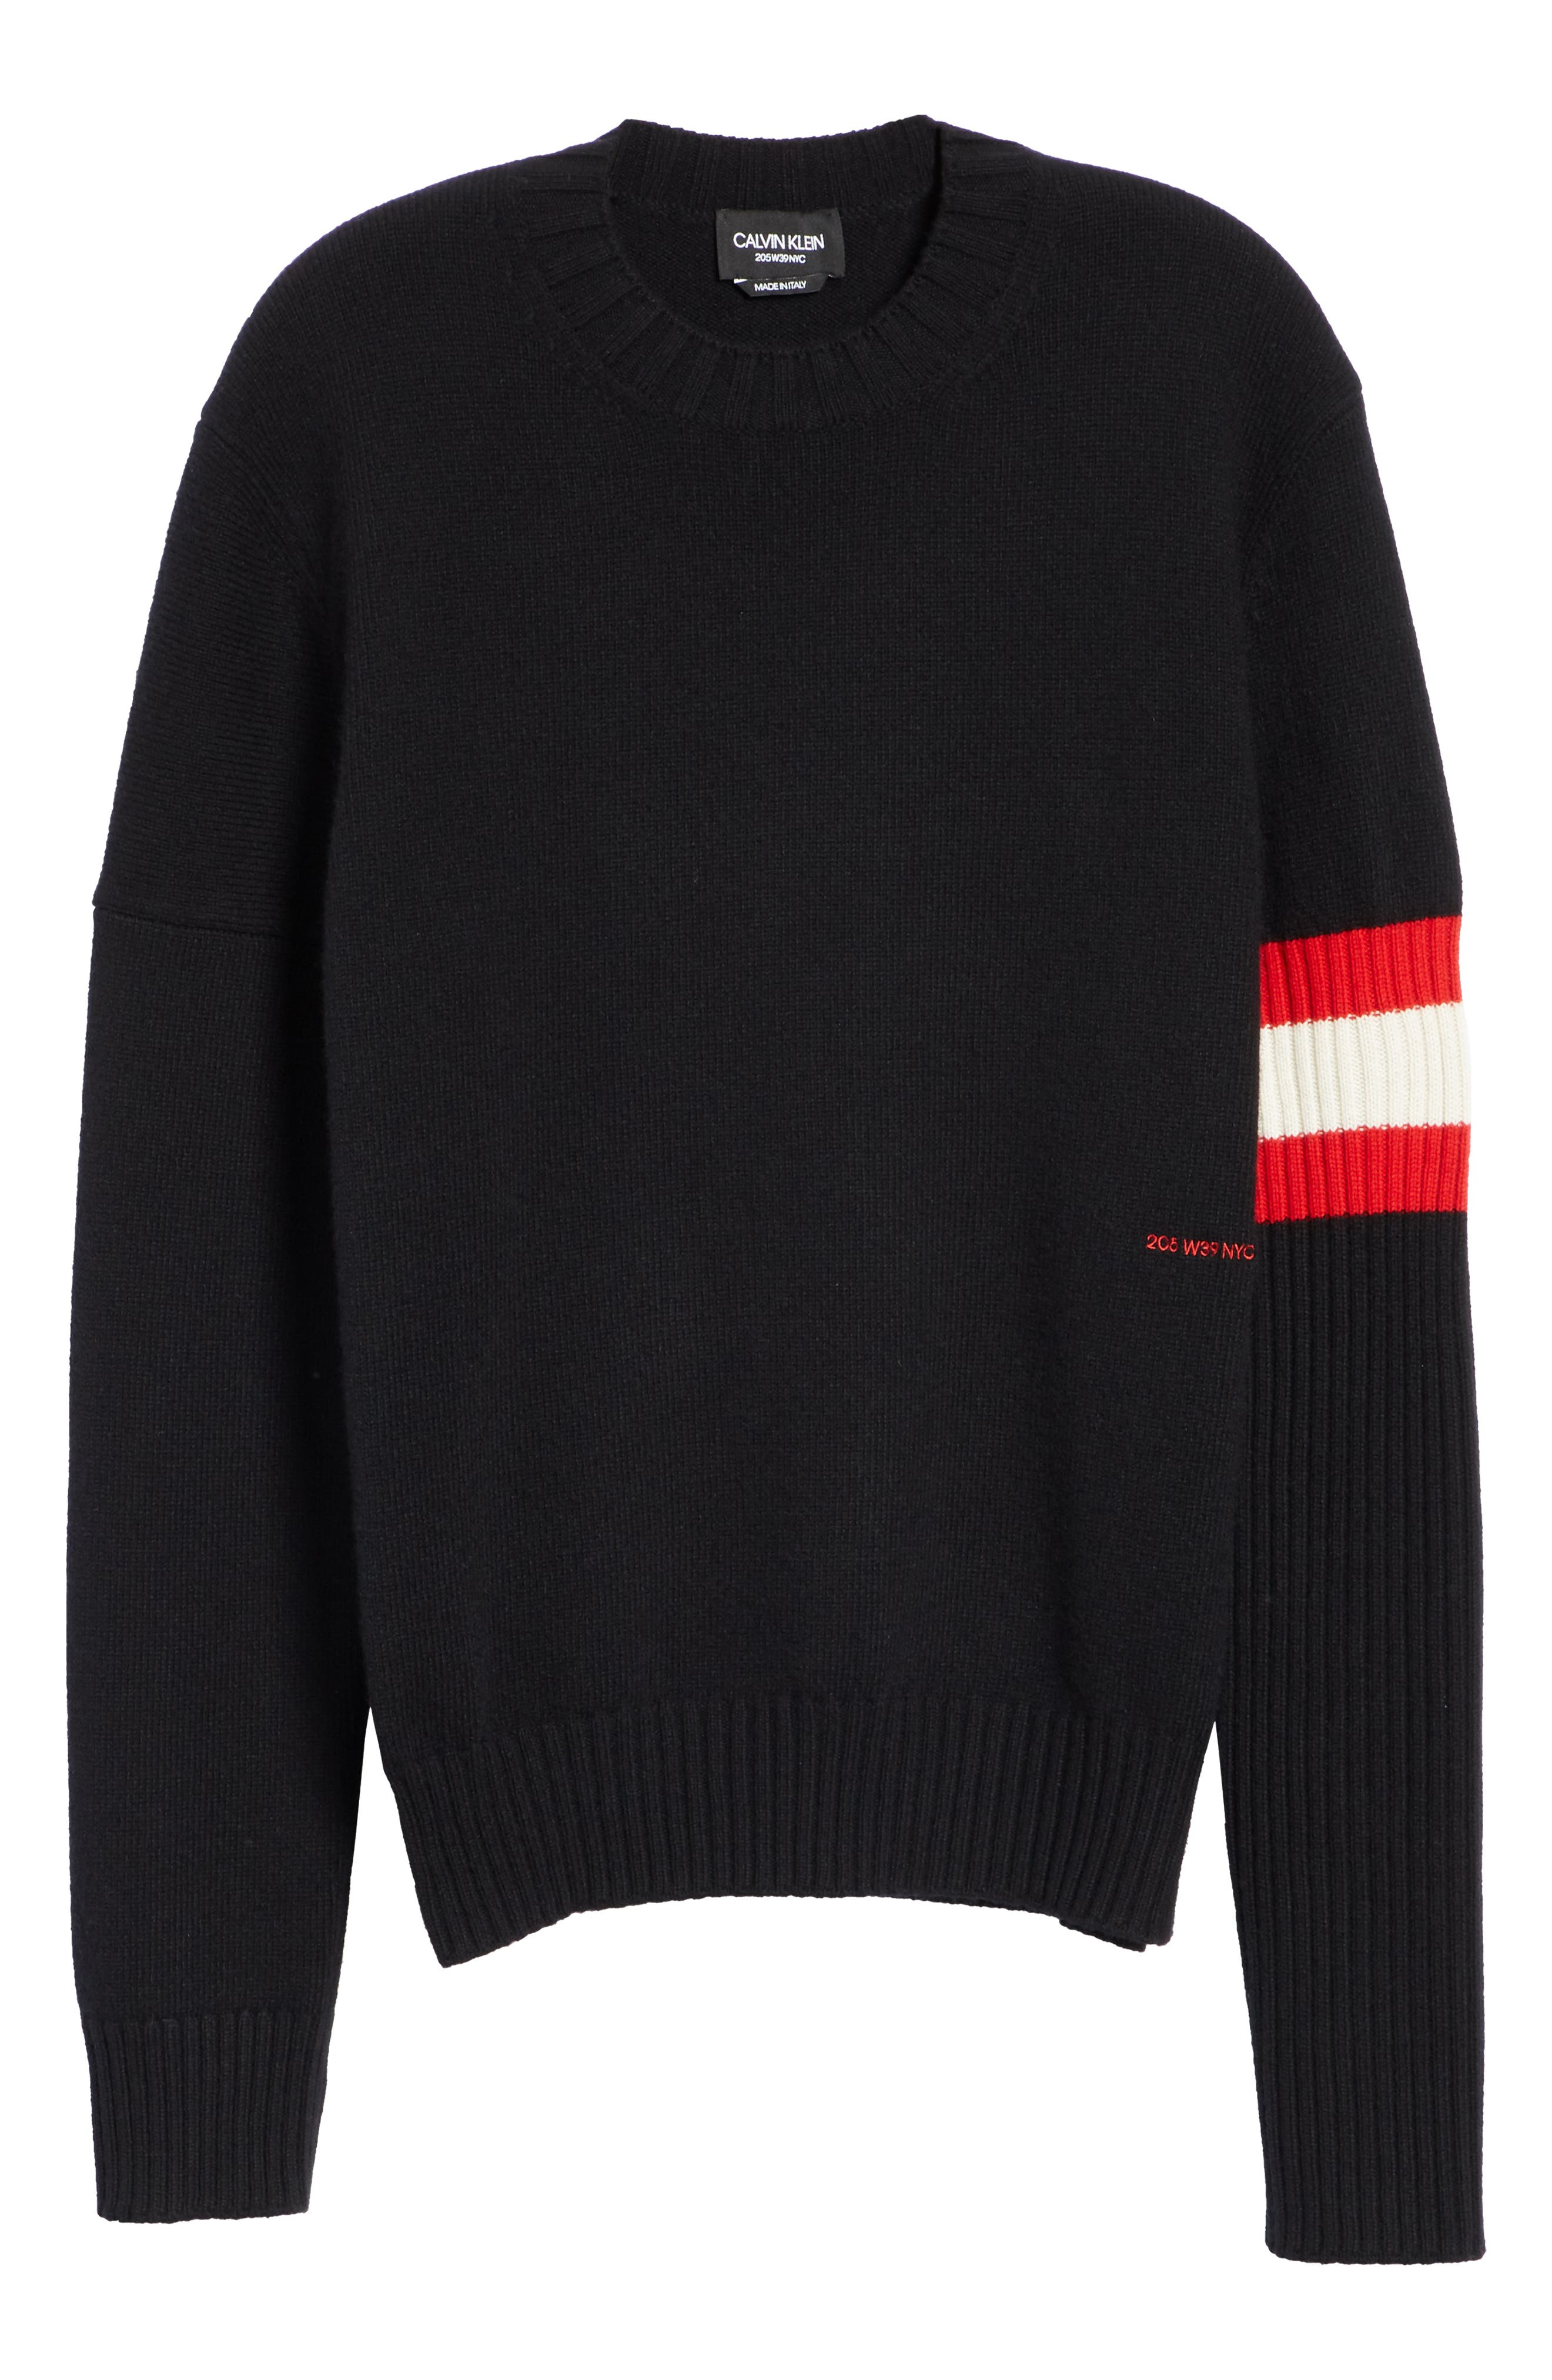 CALVIN KLEIN 205W39NYC,                             Cashmere Stripe Sleeve Sweater,                             Alternate thumbnail 6, color,                             001